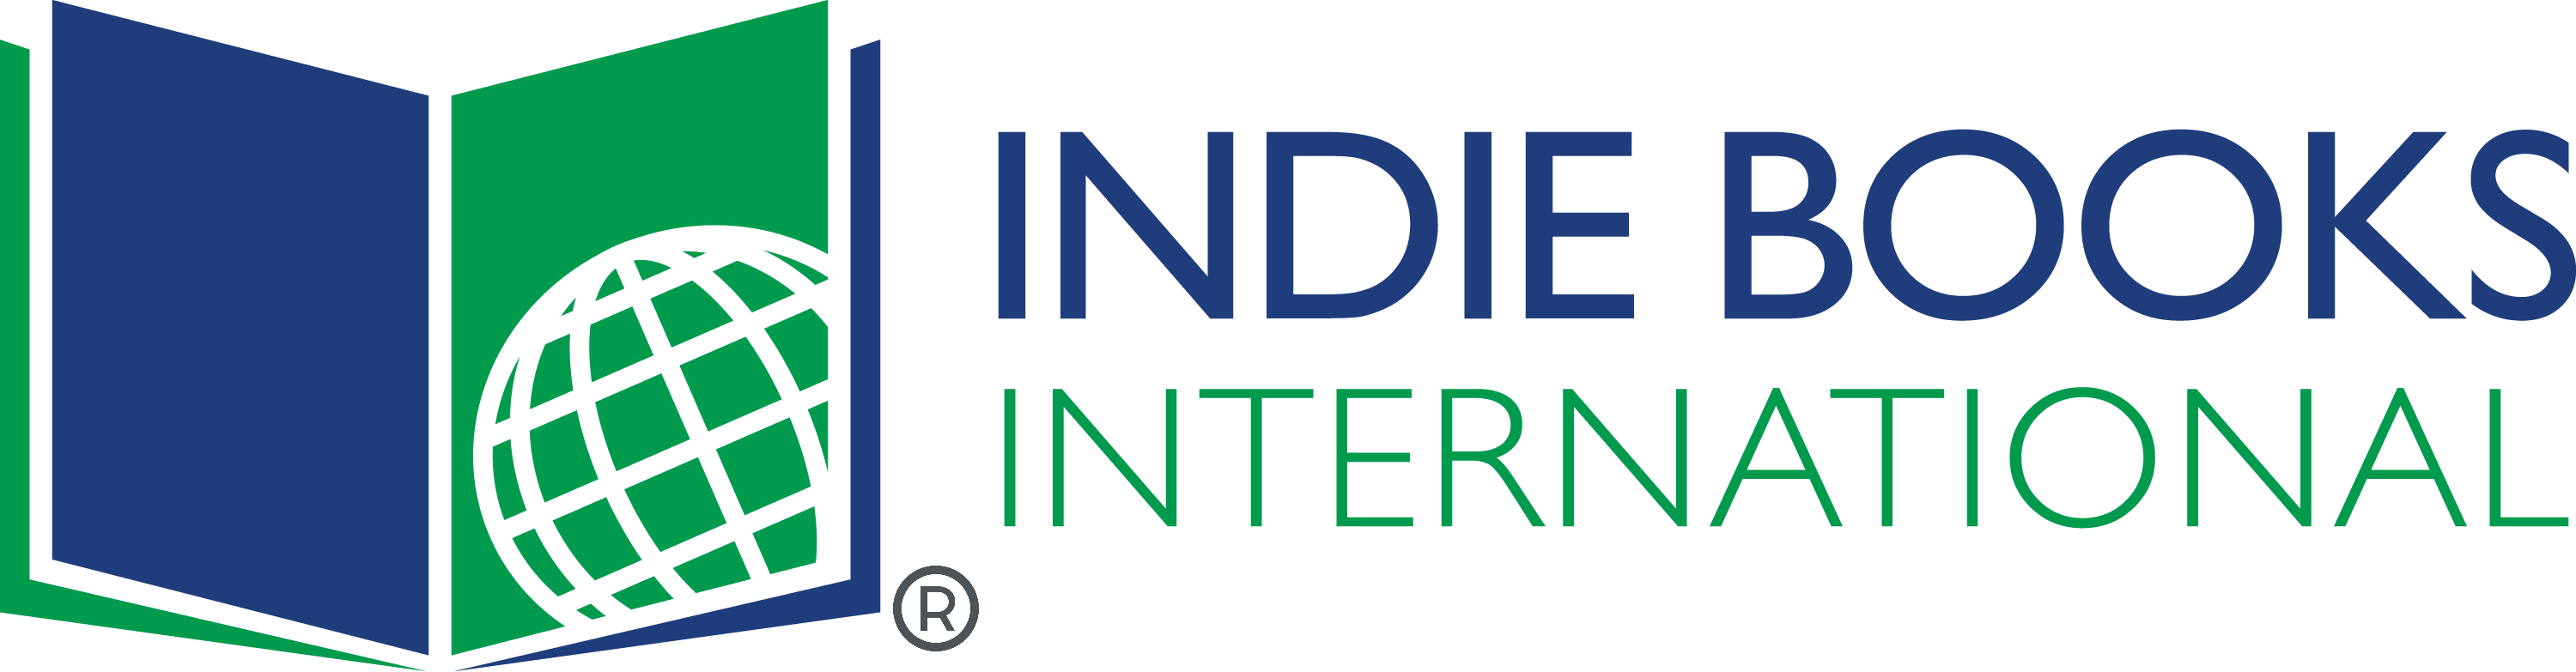 Indie Books International